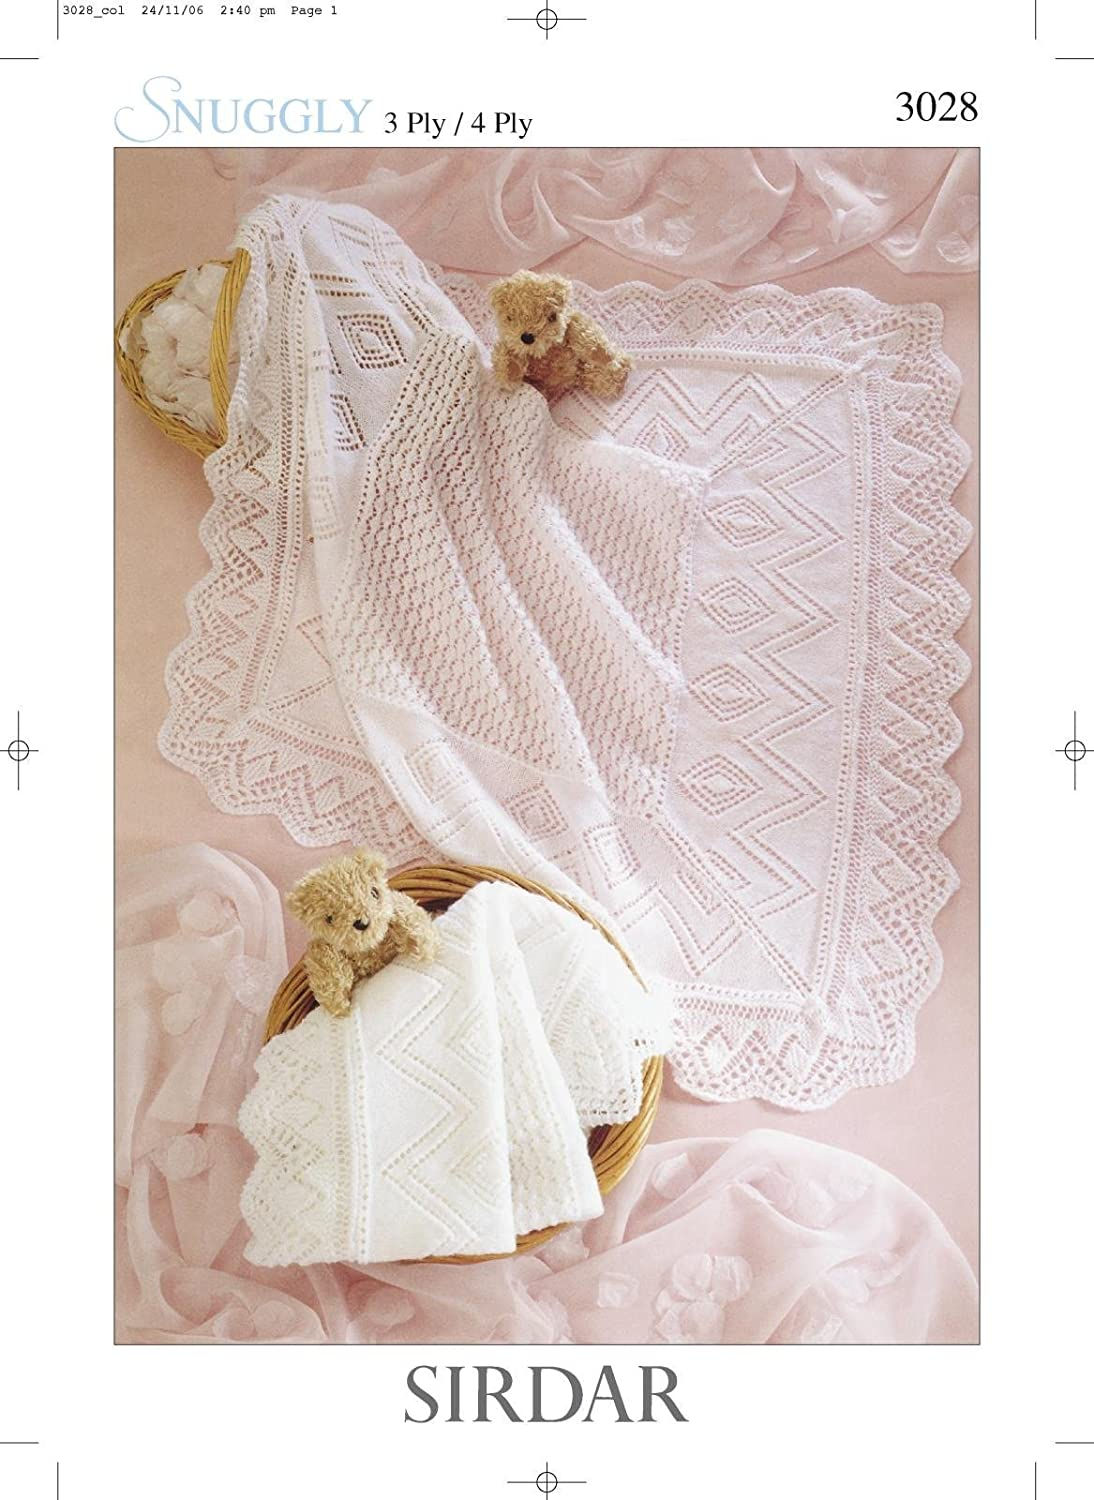 Sirdar Snuggly 4PLY & 3PLY Baby Shawl Blanket Knitting Pattern 3028 ...